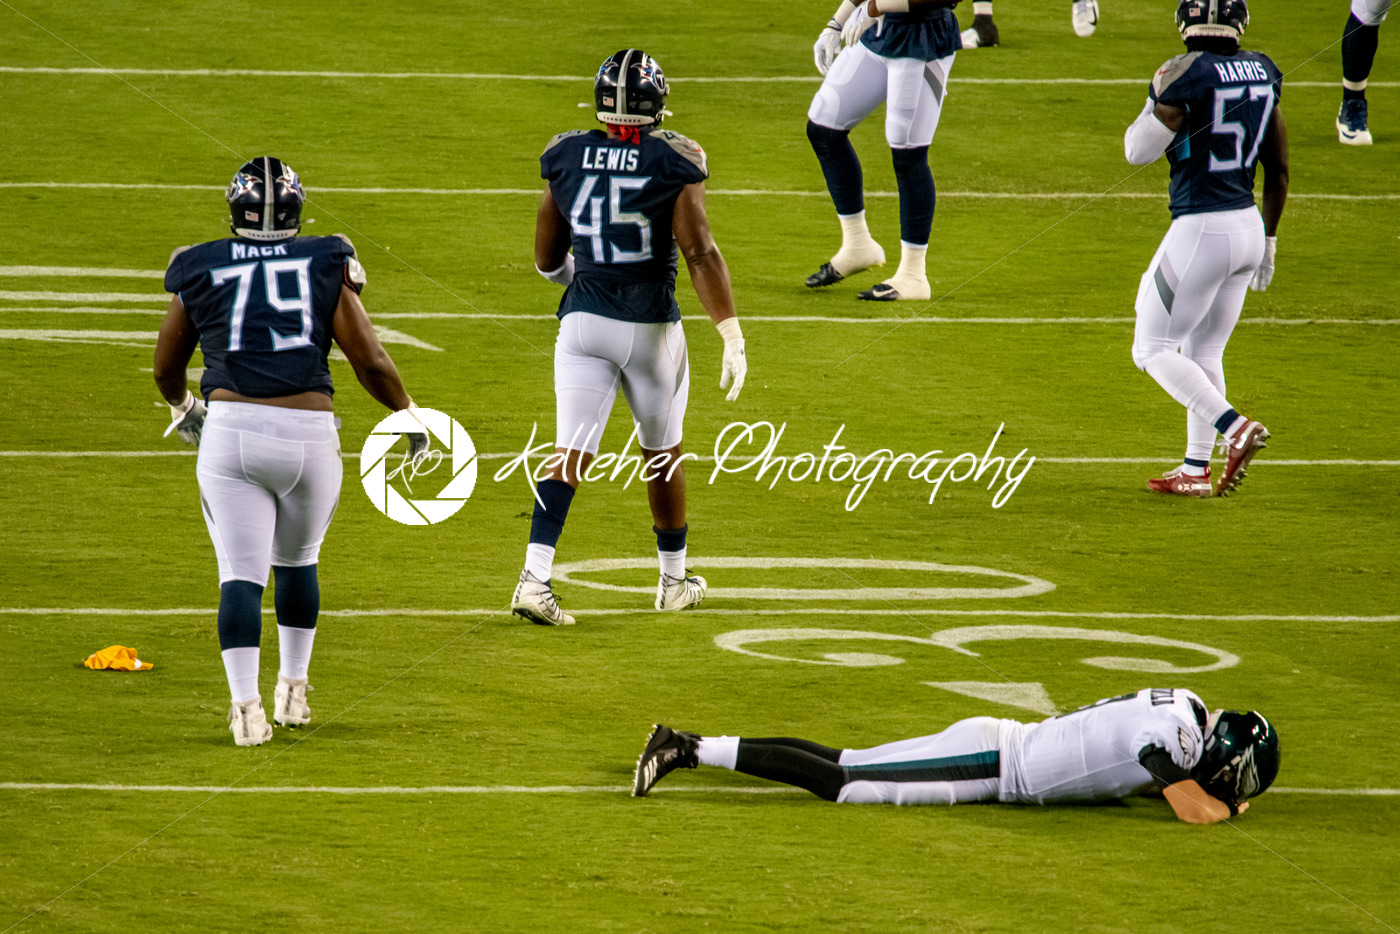 Philadelphia, PA – August 8, 2019: Philadelphia Eagles backup Quaterback Nate Sudfeld is injured - Kelleher Photography Store